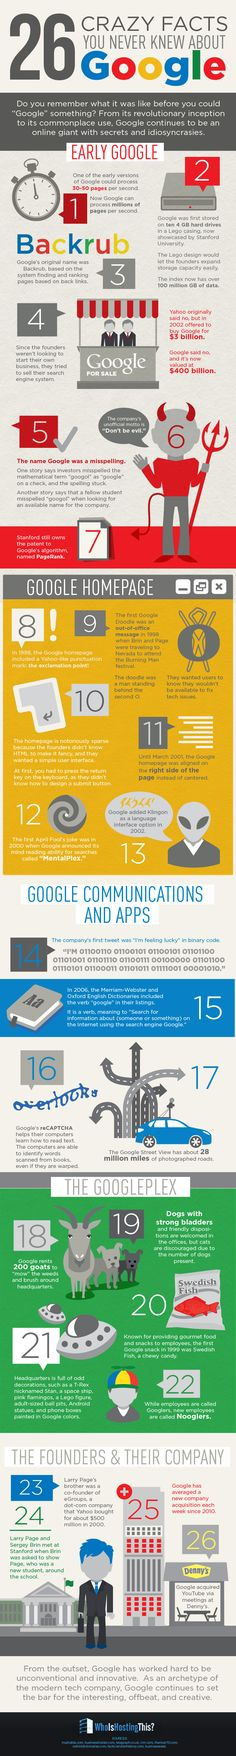 26 Crazy Facts You Never Knew About Google #infographic #Google Facts